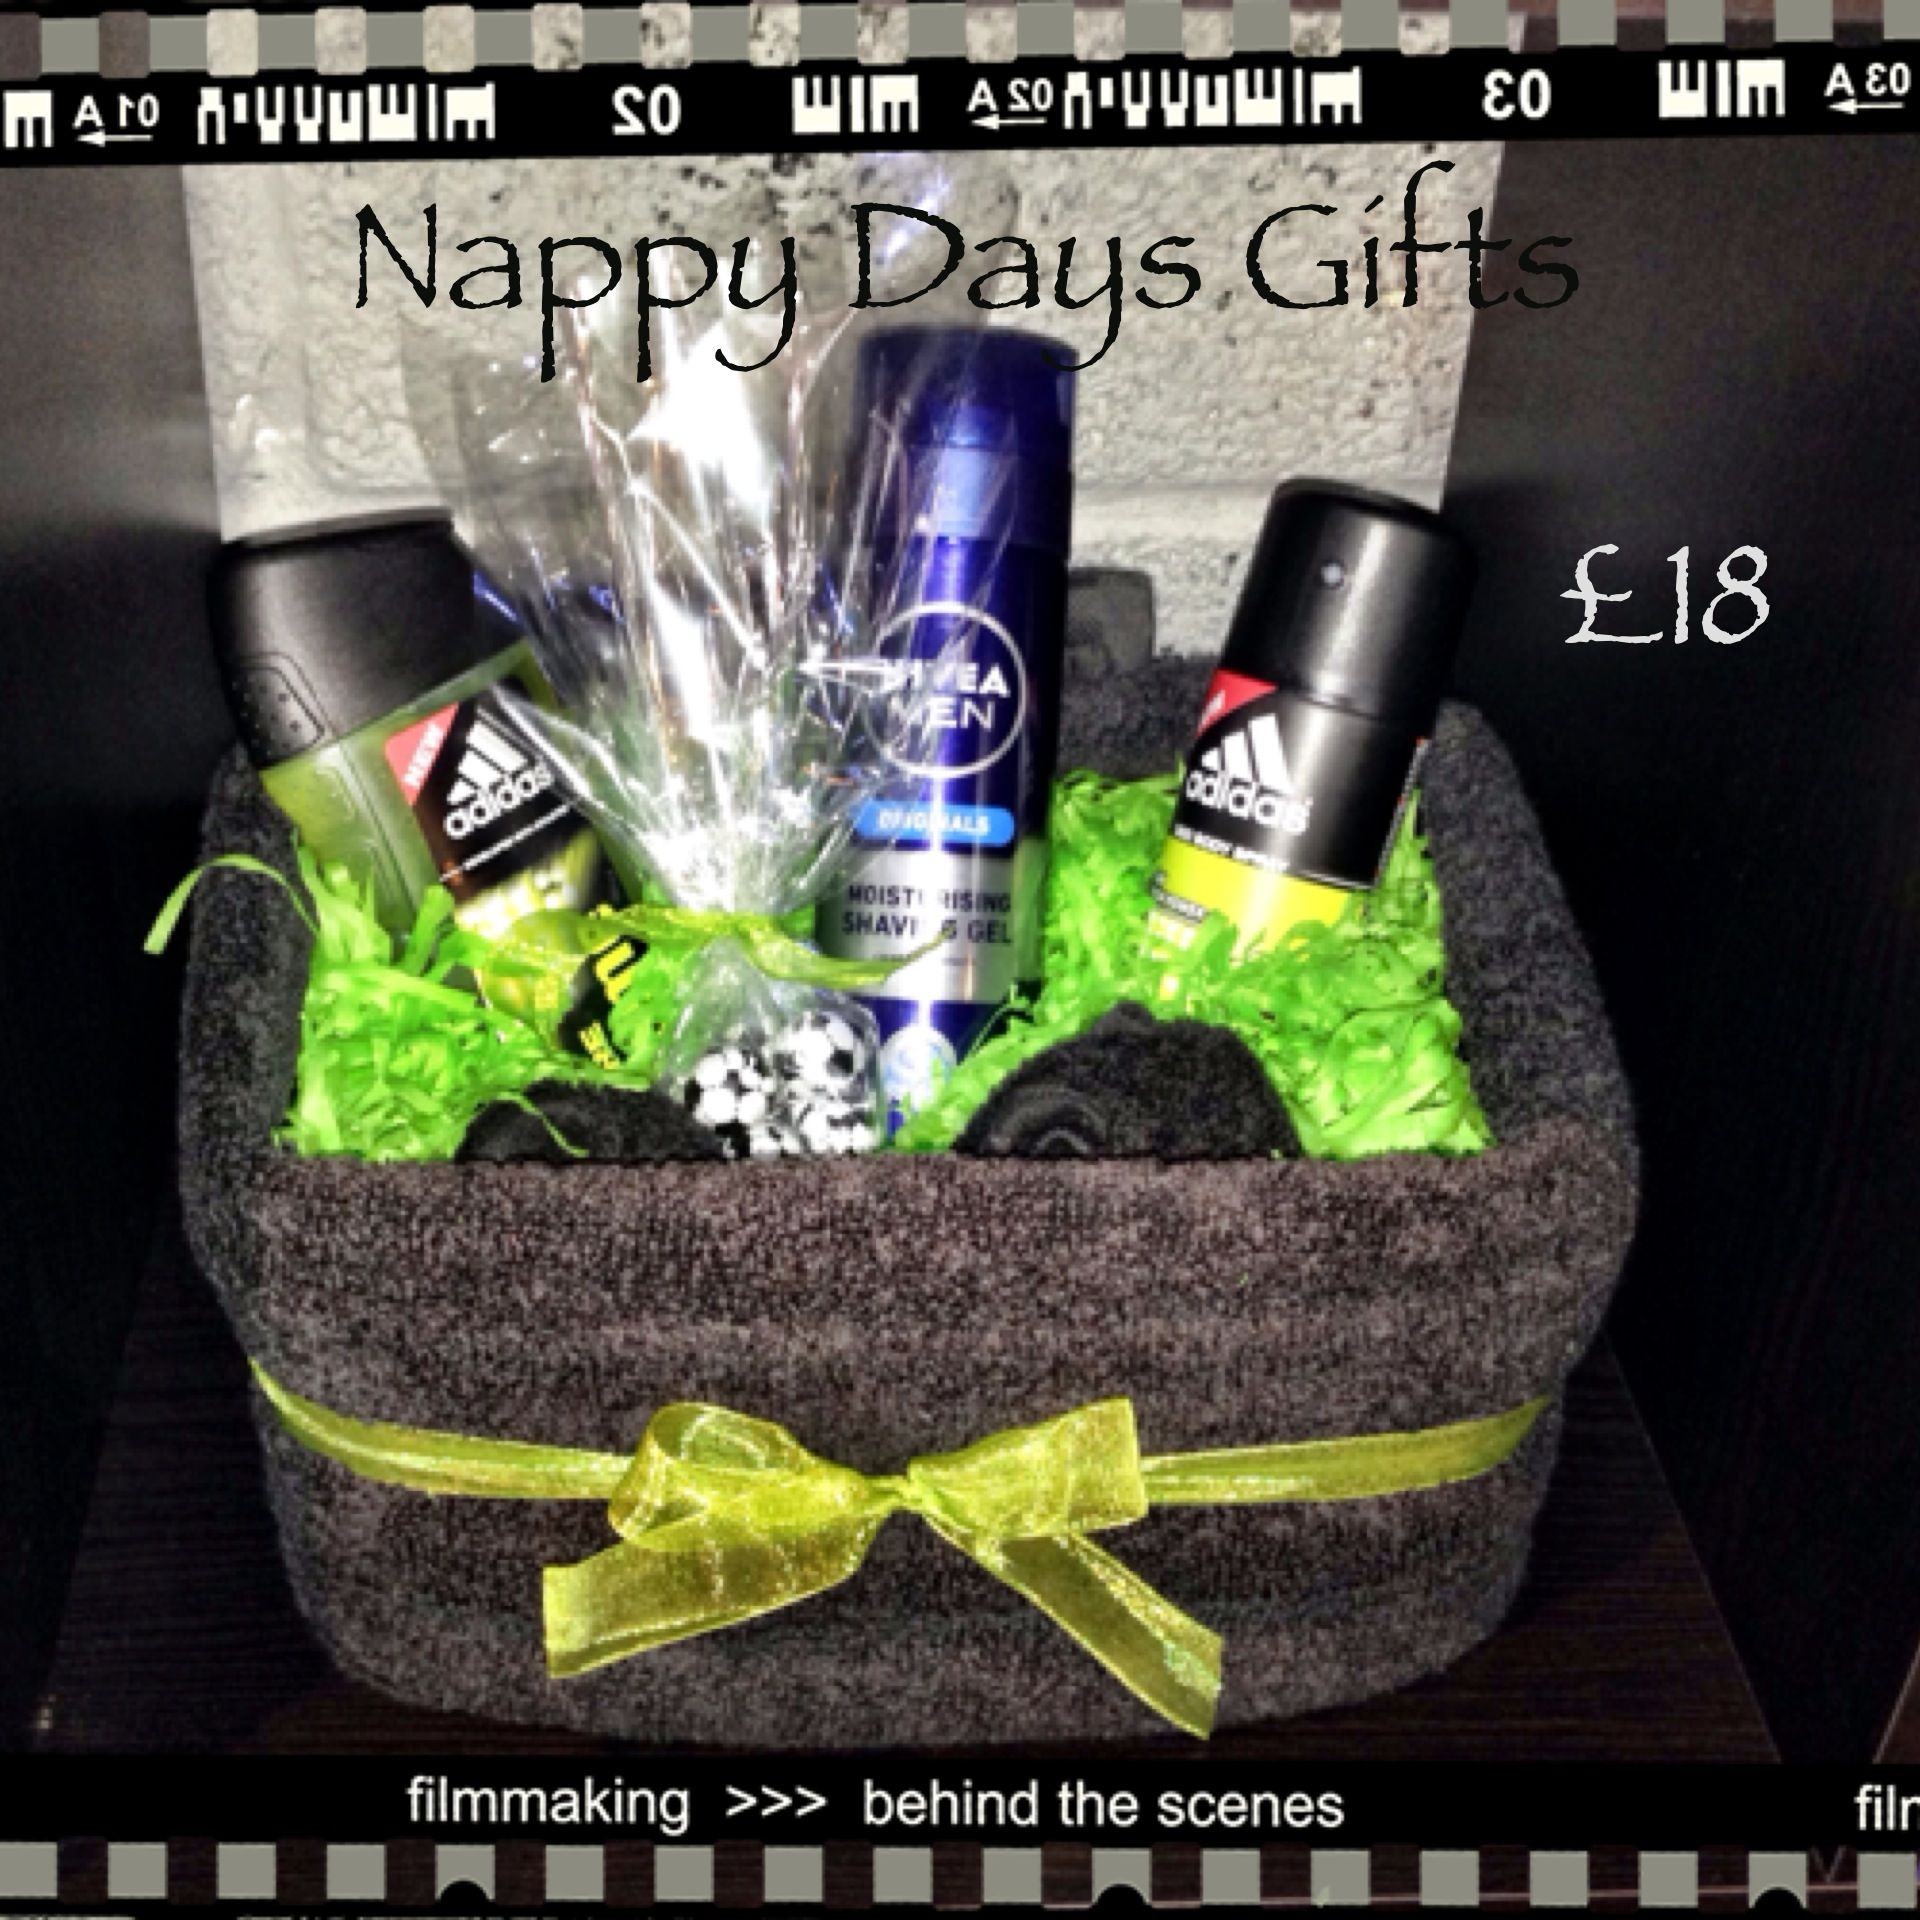 Something for the Boys - £18  Hand towel, flannels and men's toiletries with football themed chocolates.    For anyone with a specific sport in mind, email me at nappydaysgifts@gmail.com and order your unique gift, maybe with team colours?